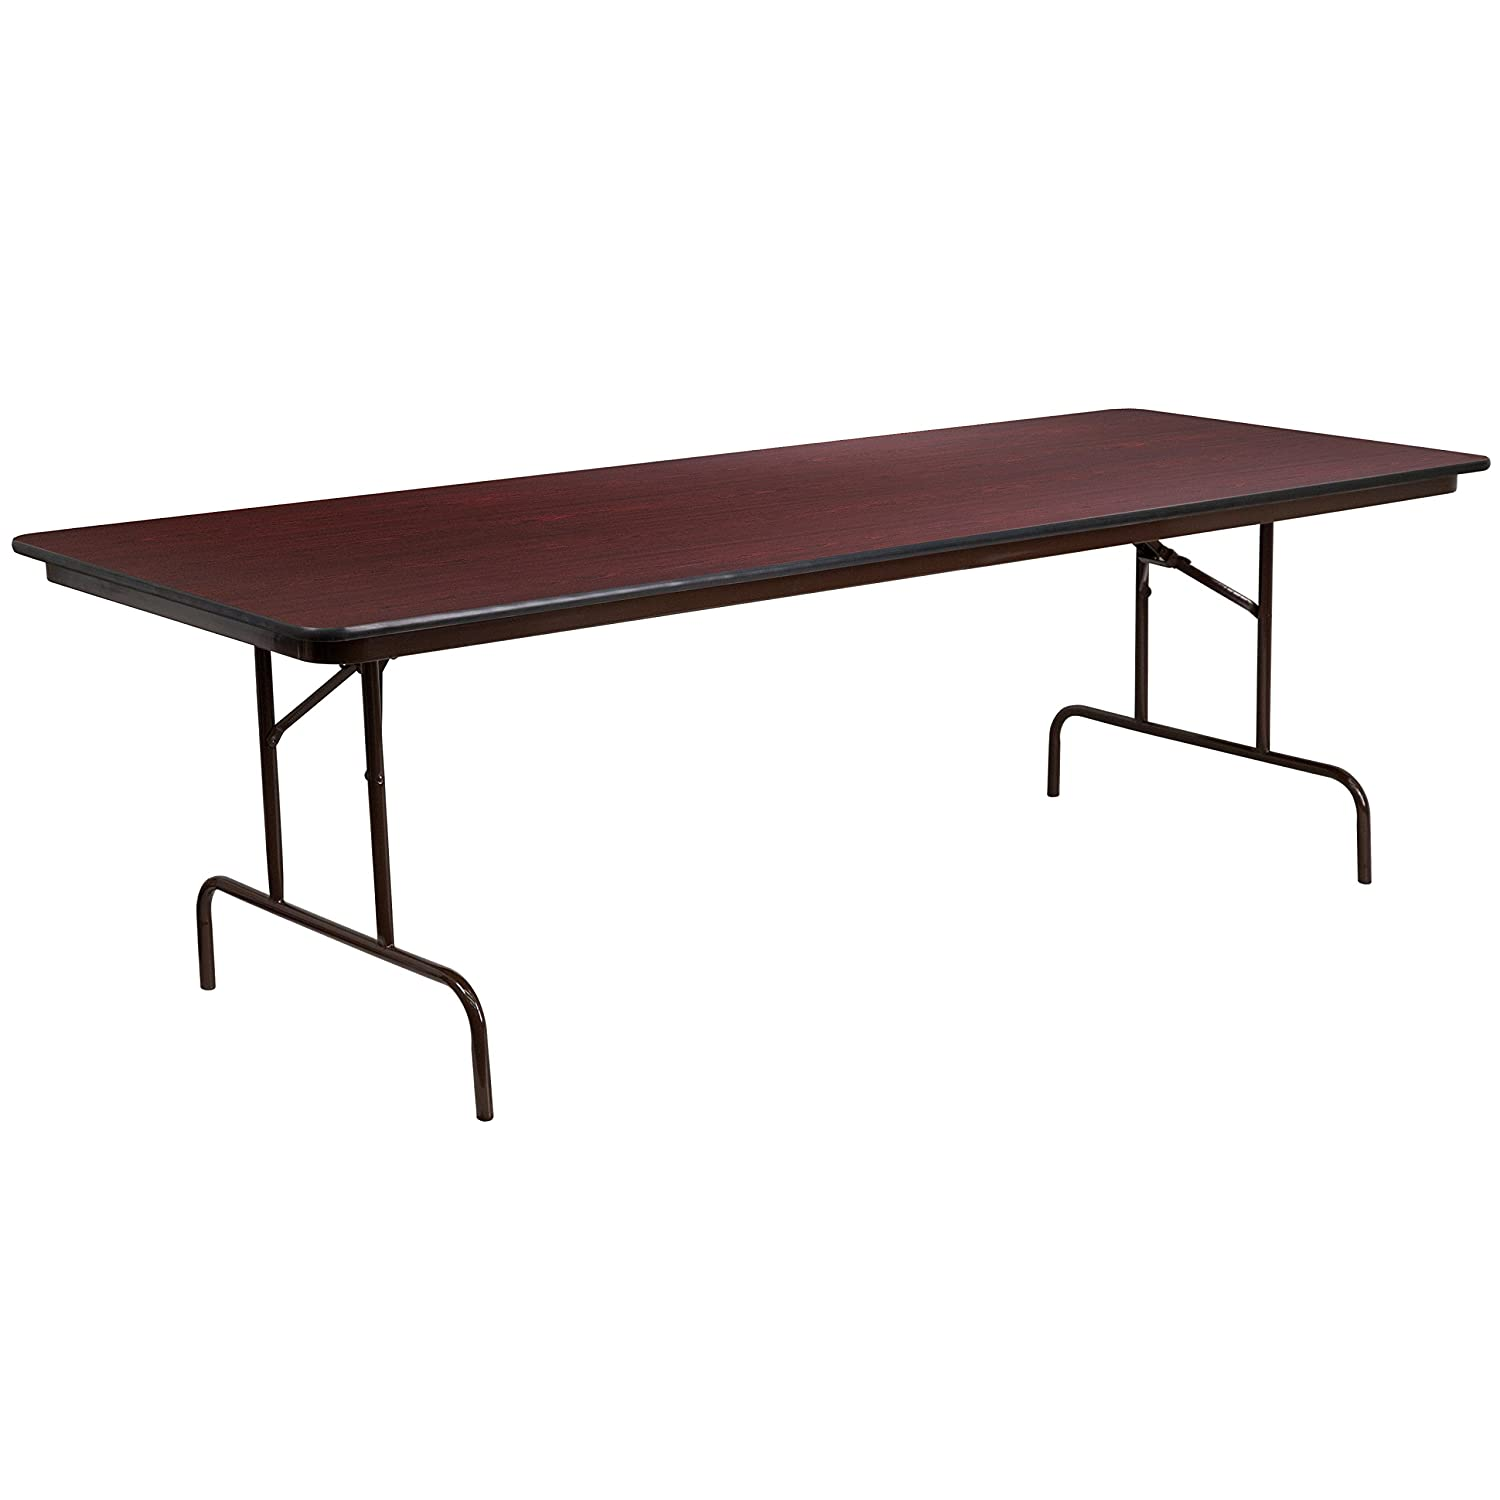 folding com kitchen x dp table mahogany melamine laminate banquet furniture flash amazon rectangular dining